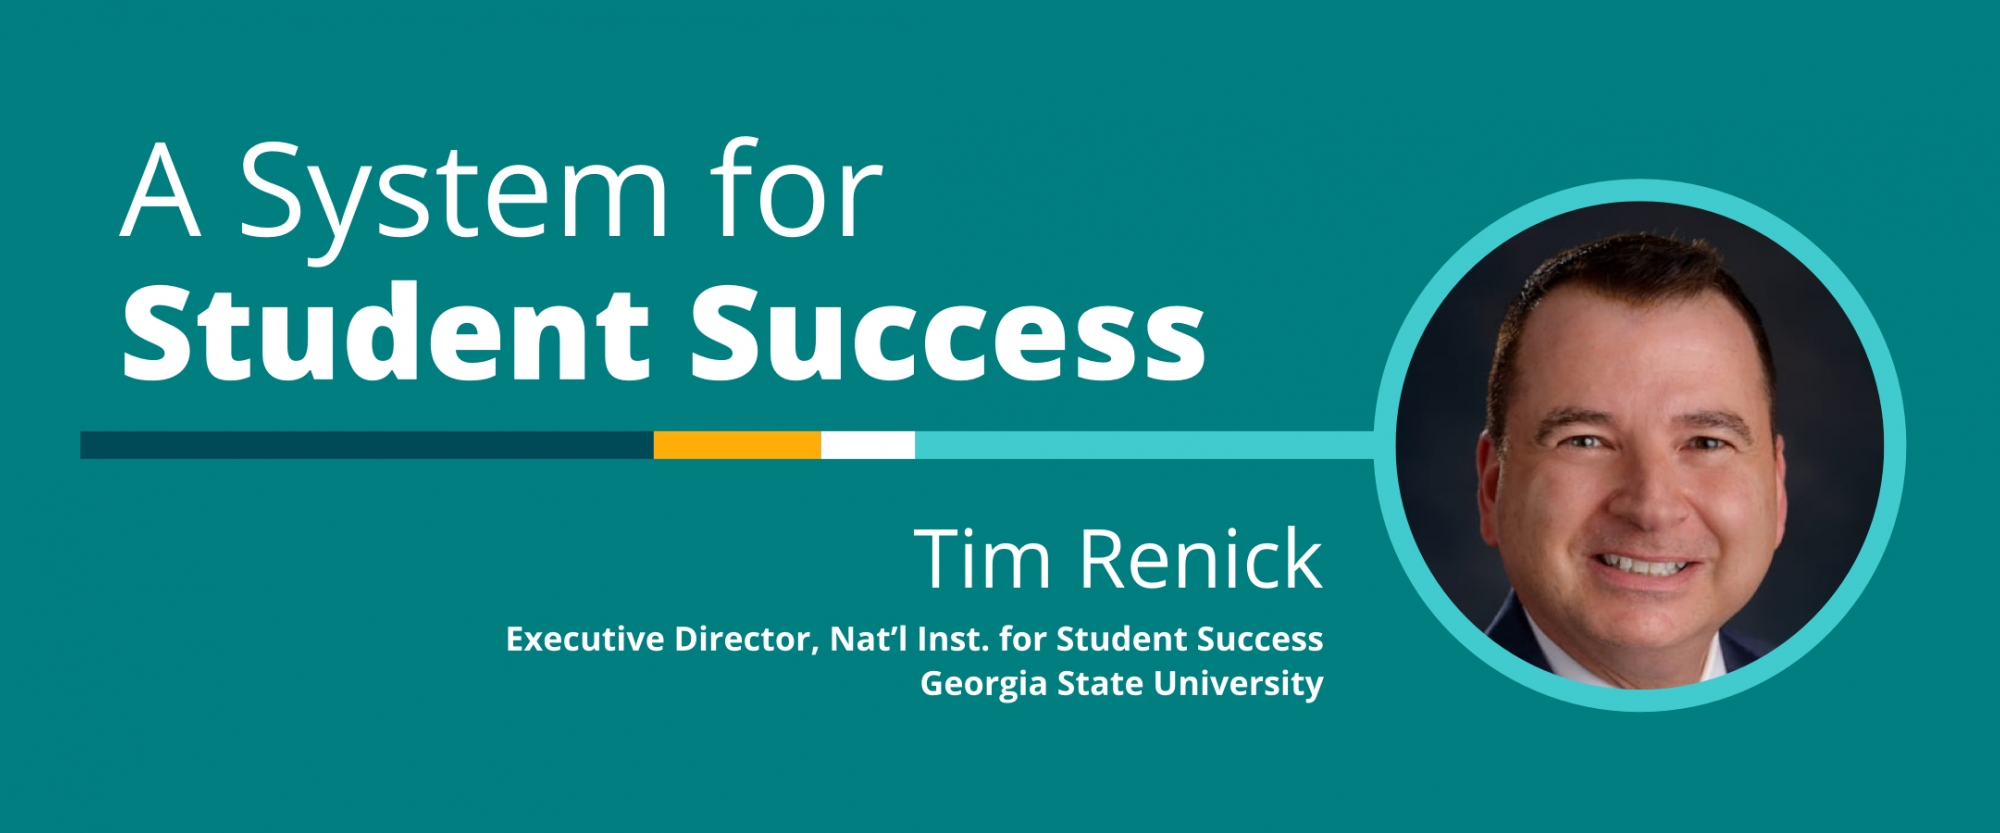 A System for Student Success